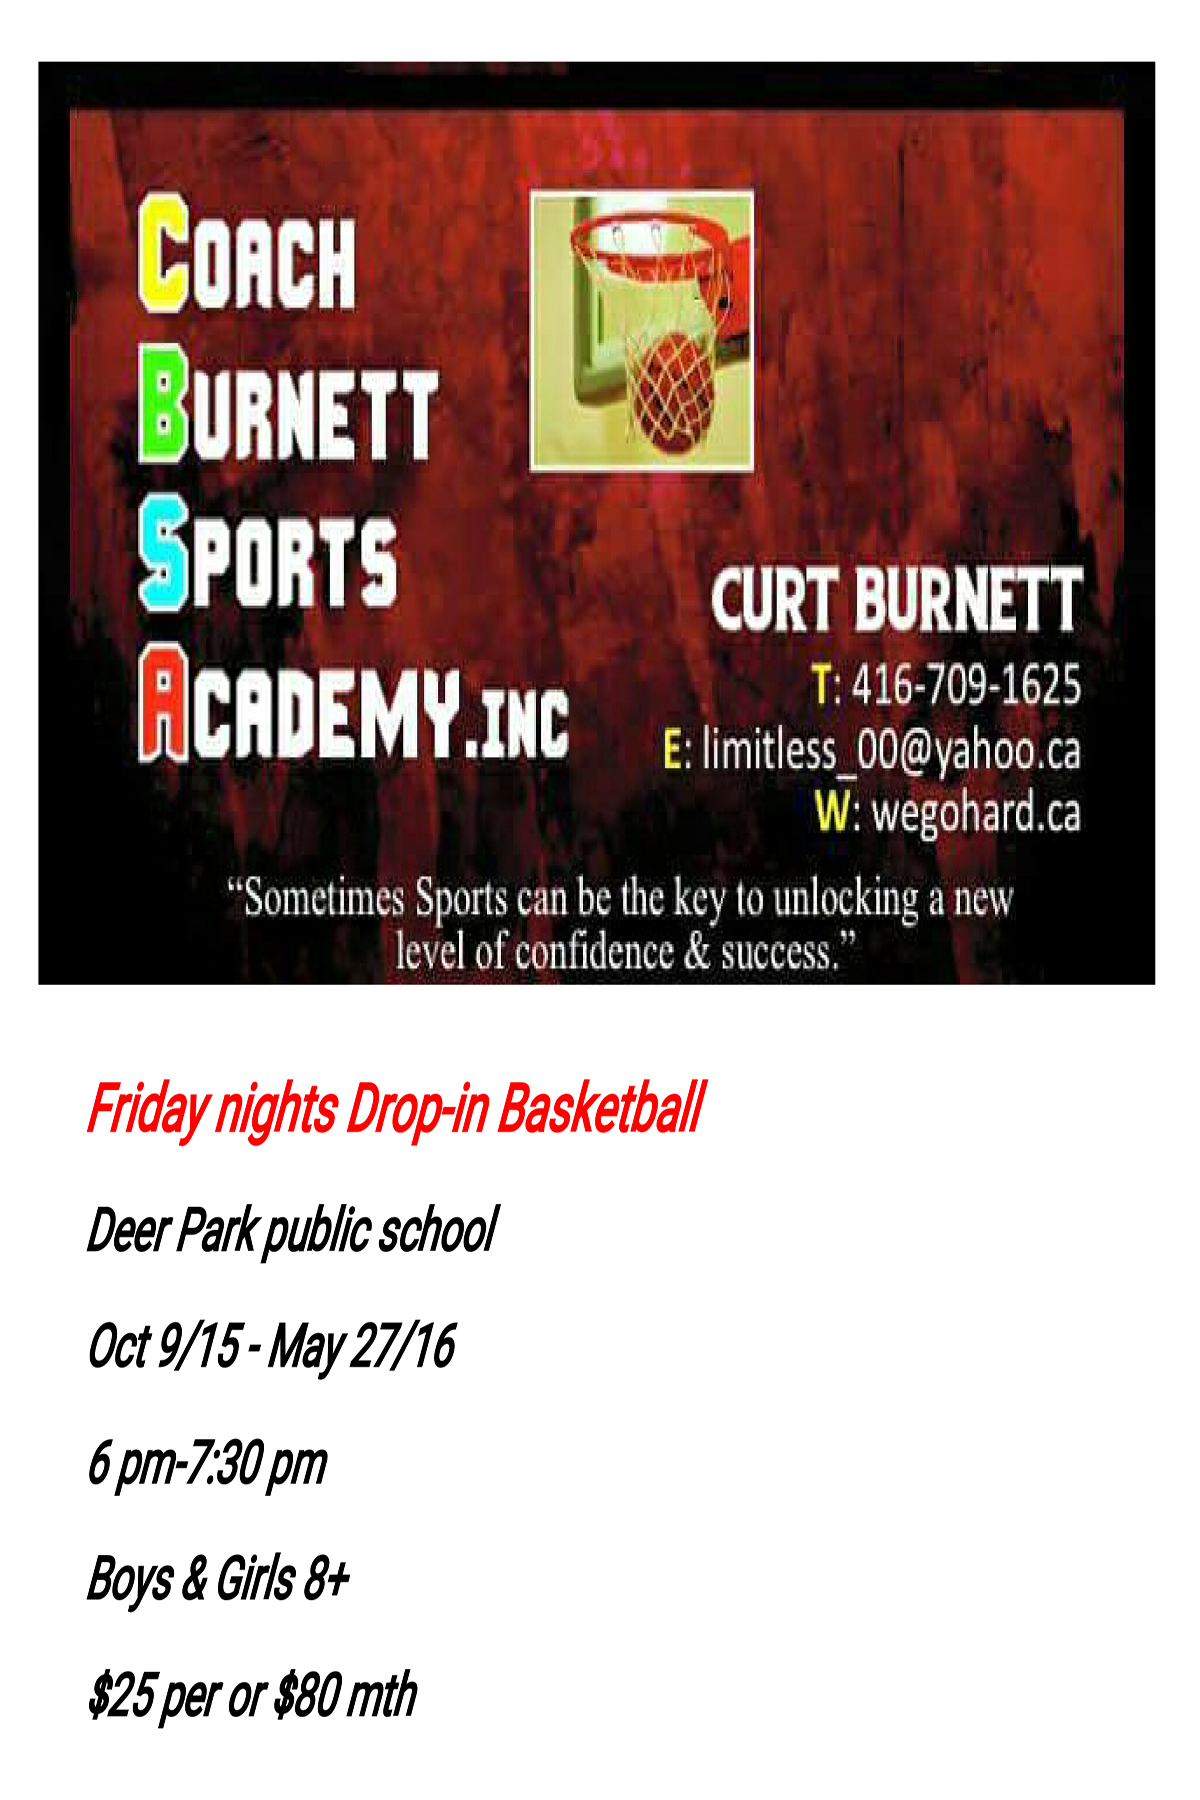 Friday night drop-in basketball 1